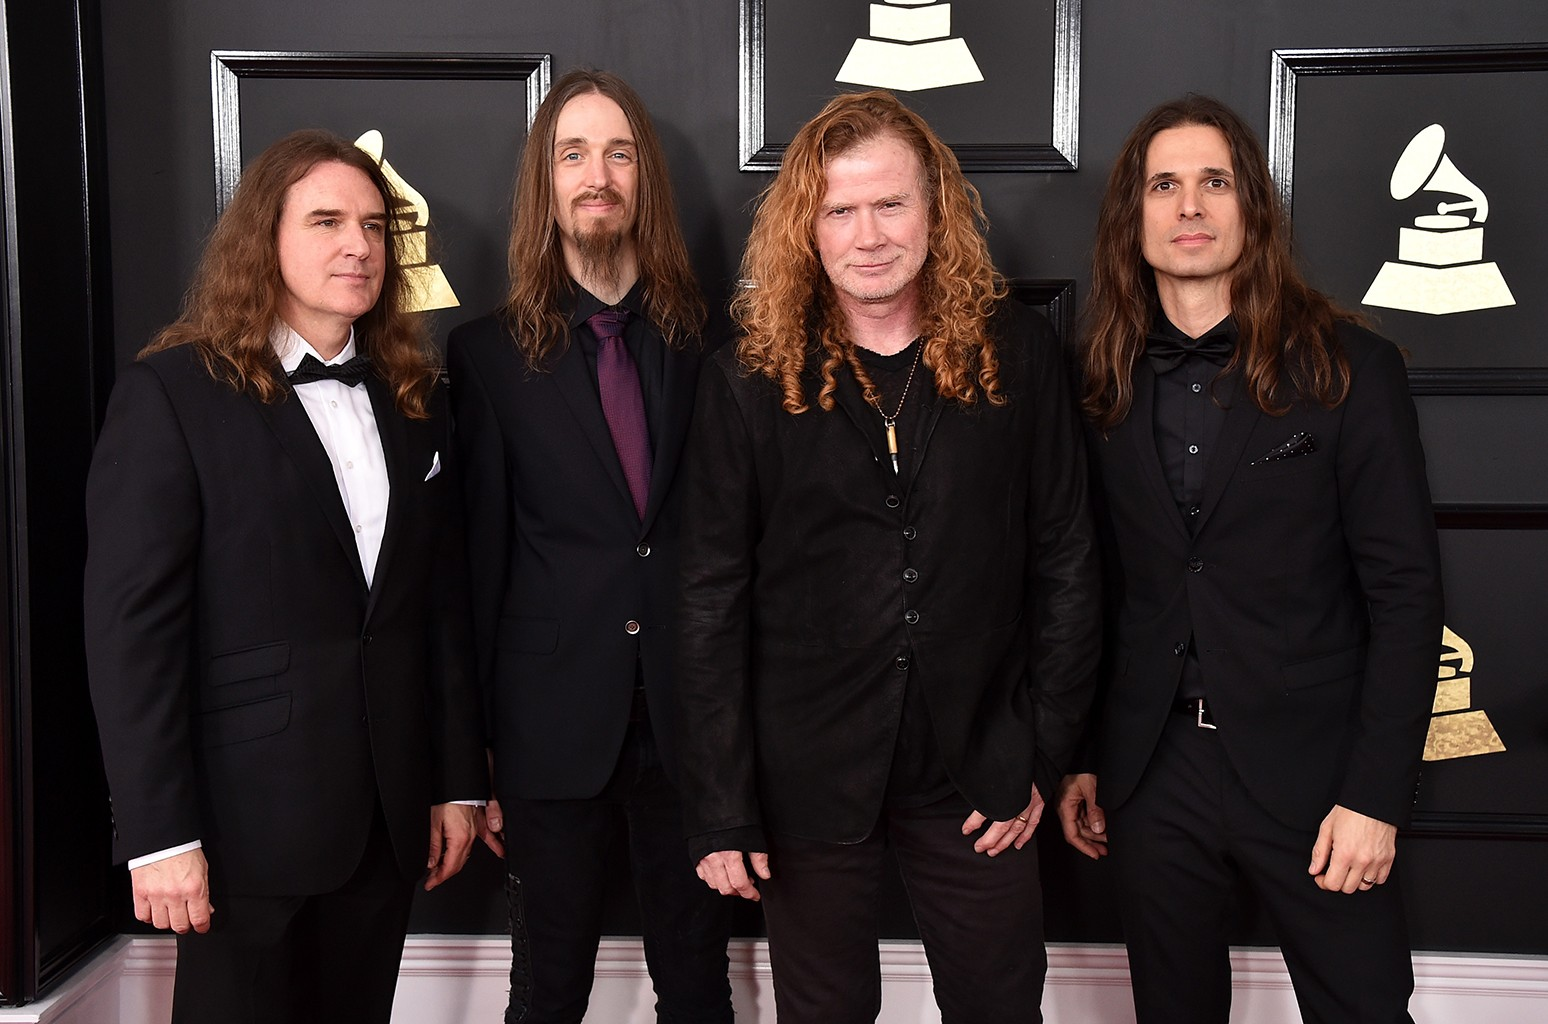 David Ellefson, Dirk Verbeuren, Dave Mustaine, and Kiko Loureiro of music group Megadeth attend The 59th Grammy Awards at Staples Center on Feb. 12, 2017 in Los Angeles.